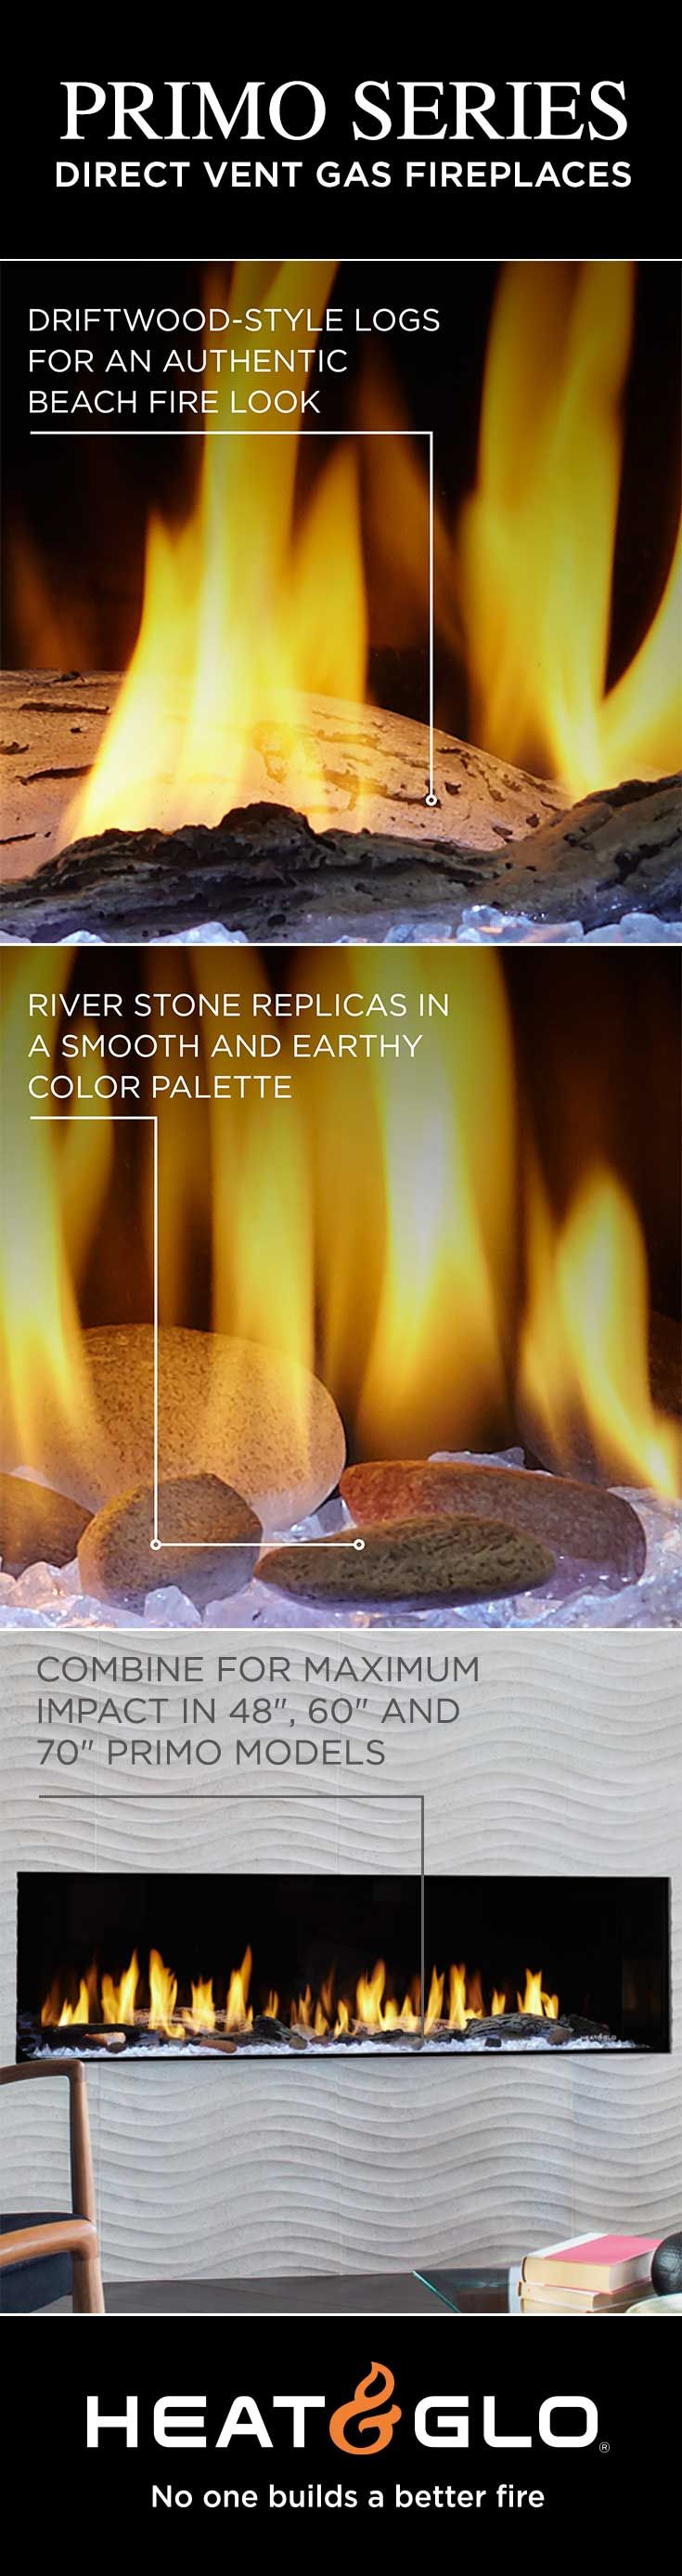 New media options available for Heat & Glo's Primo gas fireplaces. Driftwood-style logs create an authentic beach fire look and river rock stones replicate smooth stones found in North American rivers.  Combine both for maximum impact!